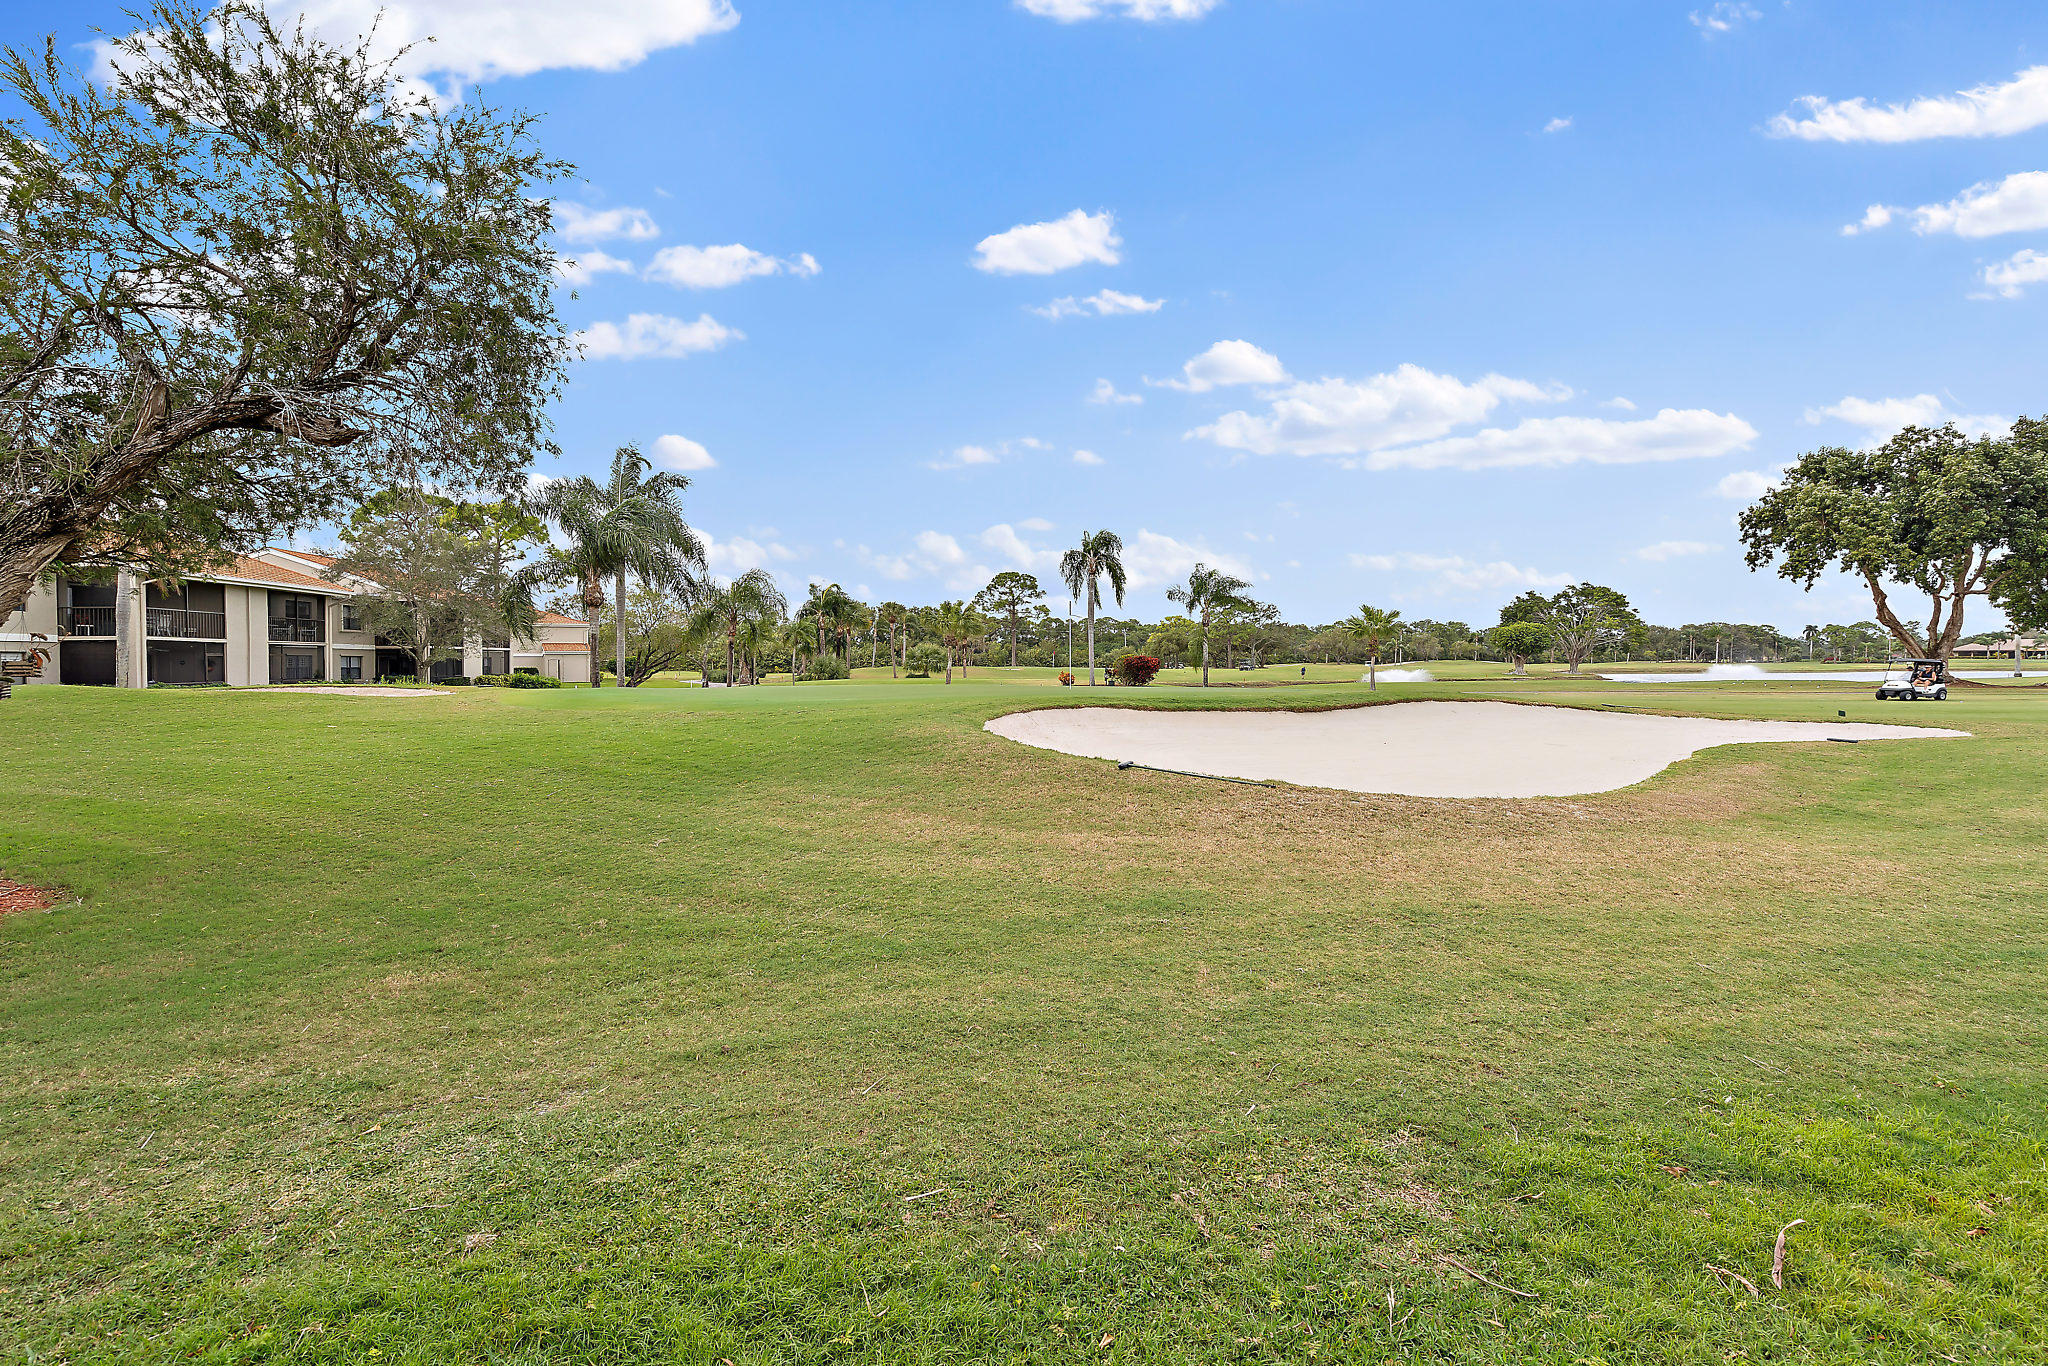 EASTPOINTE SUBDIVISION PL 9   LOT 35 TRACT 1